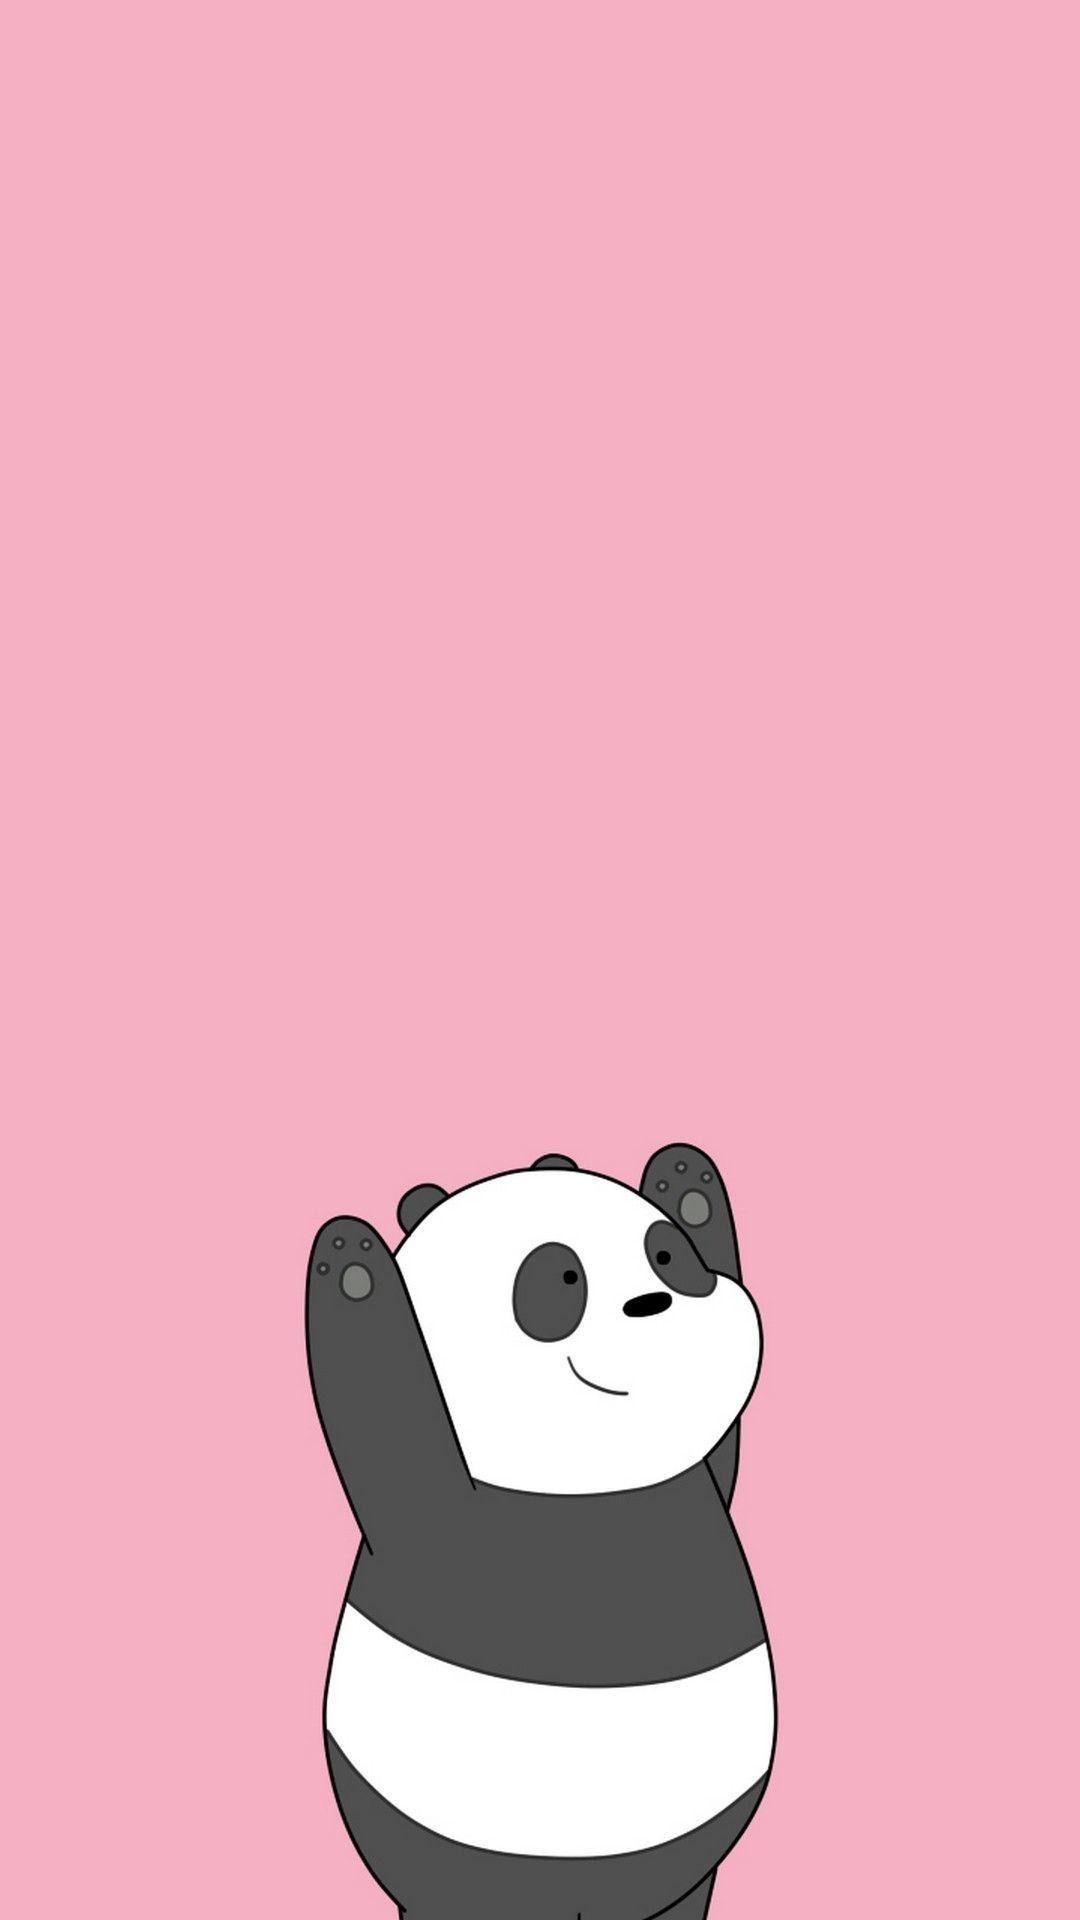 Anime Panda Wallpaper : anime, panda, wallpaper, Panda, Anime, Wallpapers, WallpaperDog